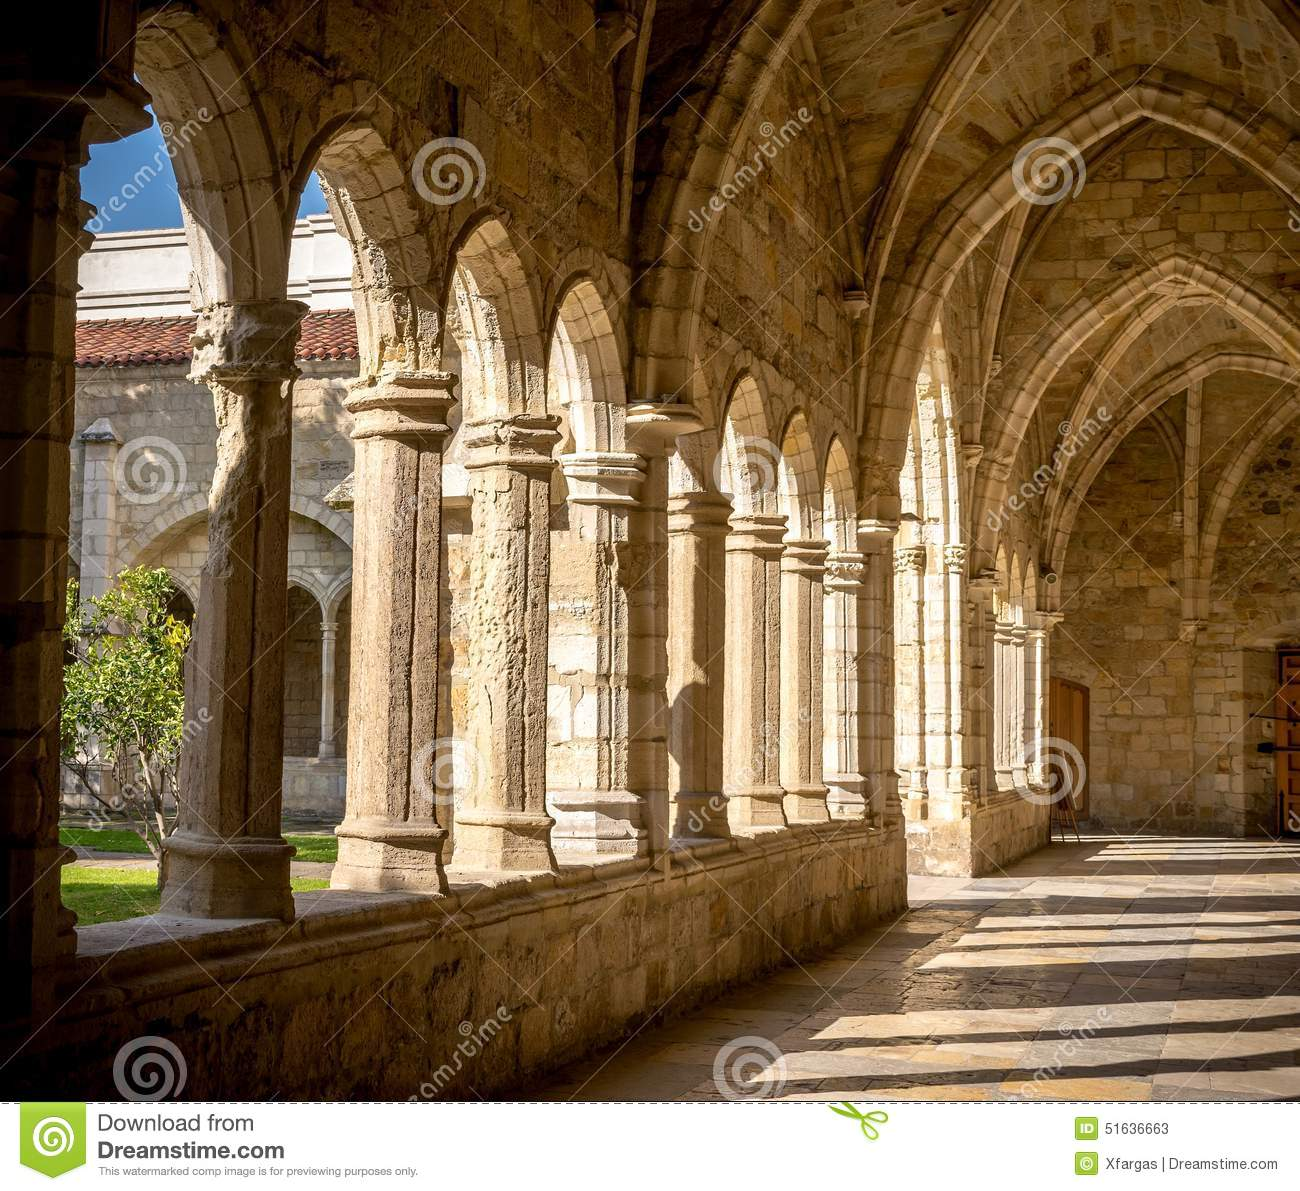 Cathedral hallway clipart #12